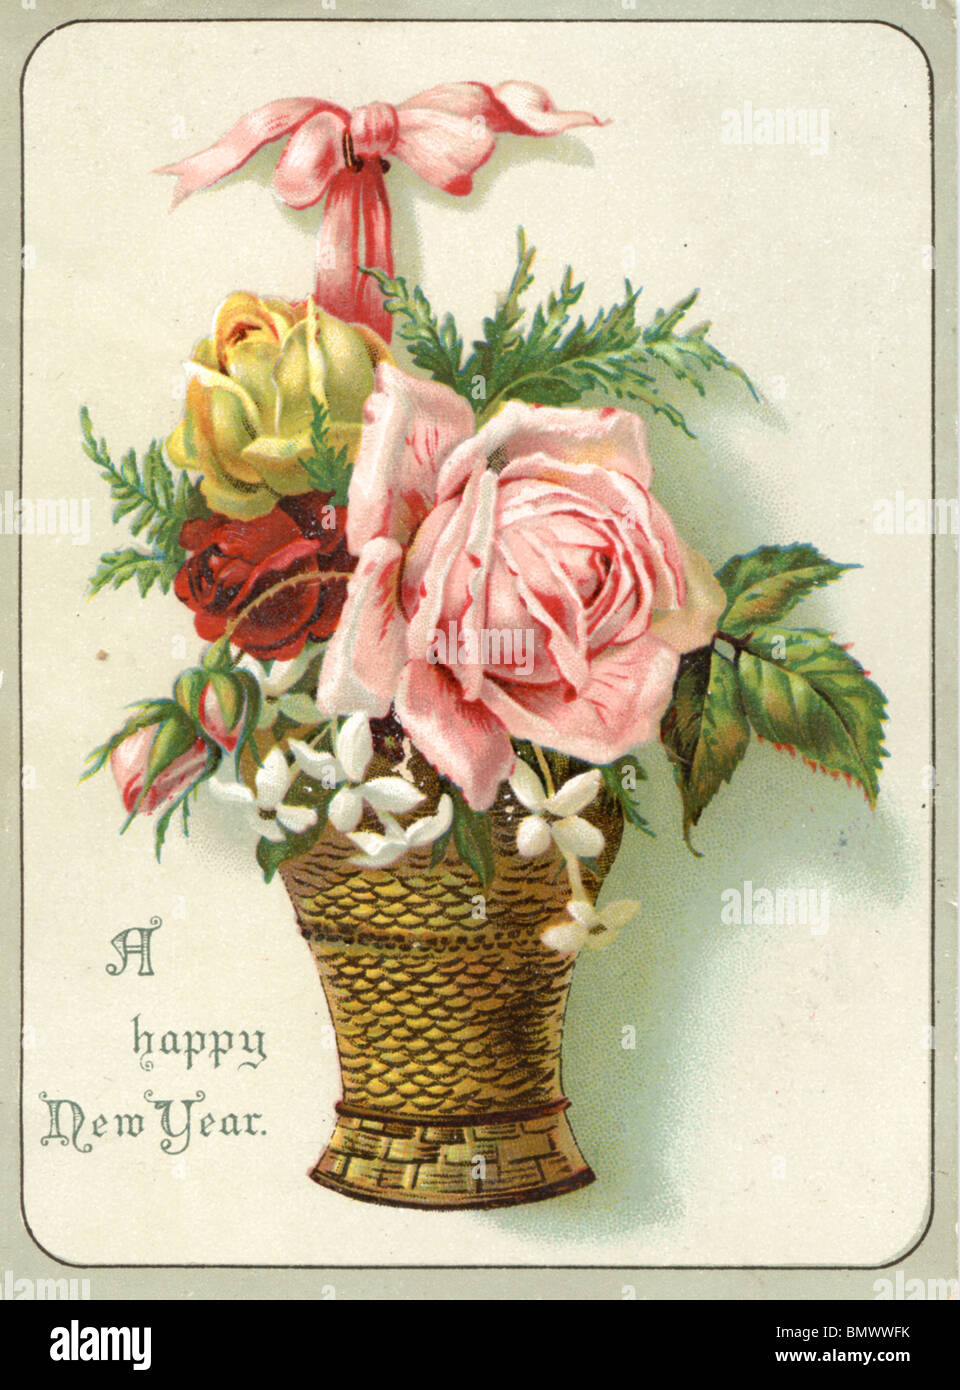 new year card pink yellow and red roses in a basket